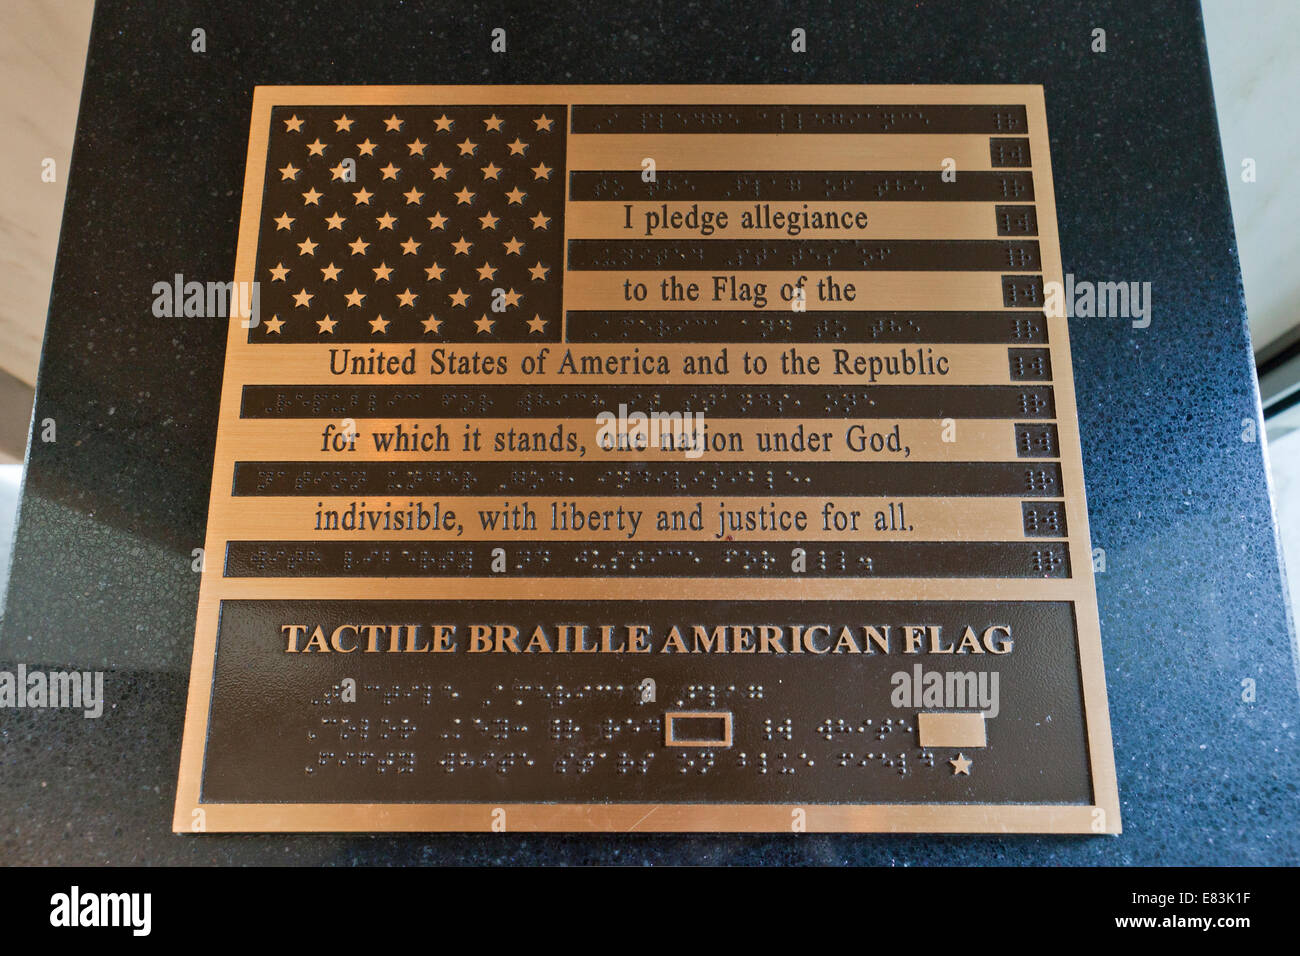 The Pledge of Allegiance of the United States on a brass flag relief including braille - USA - Stock Image